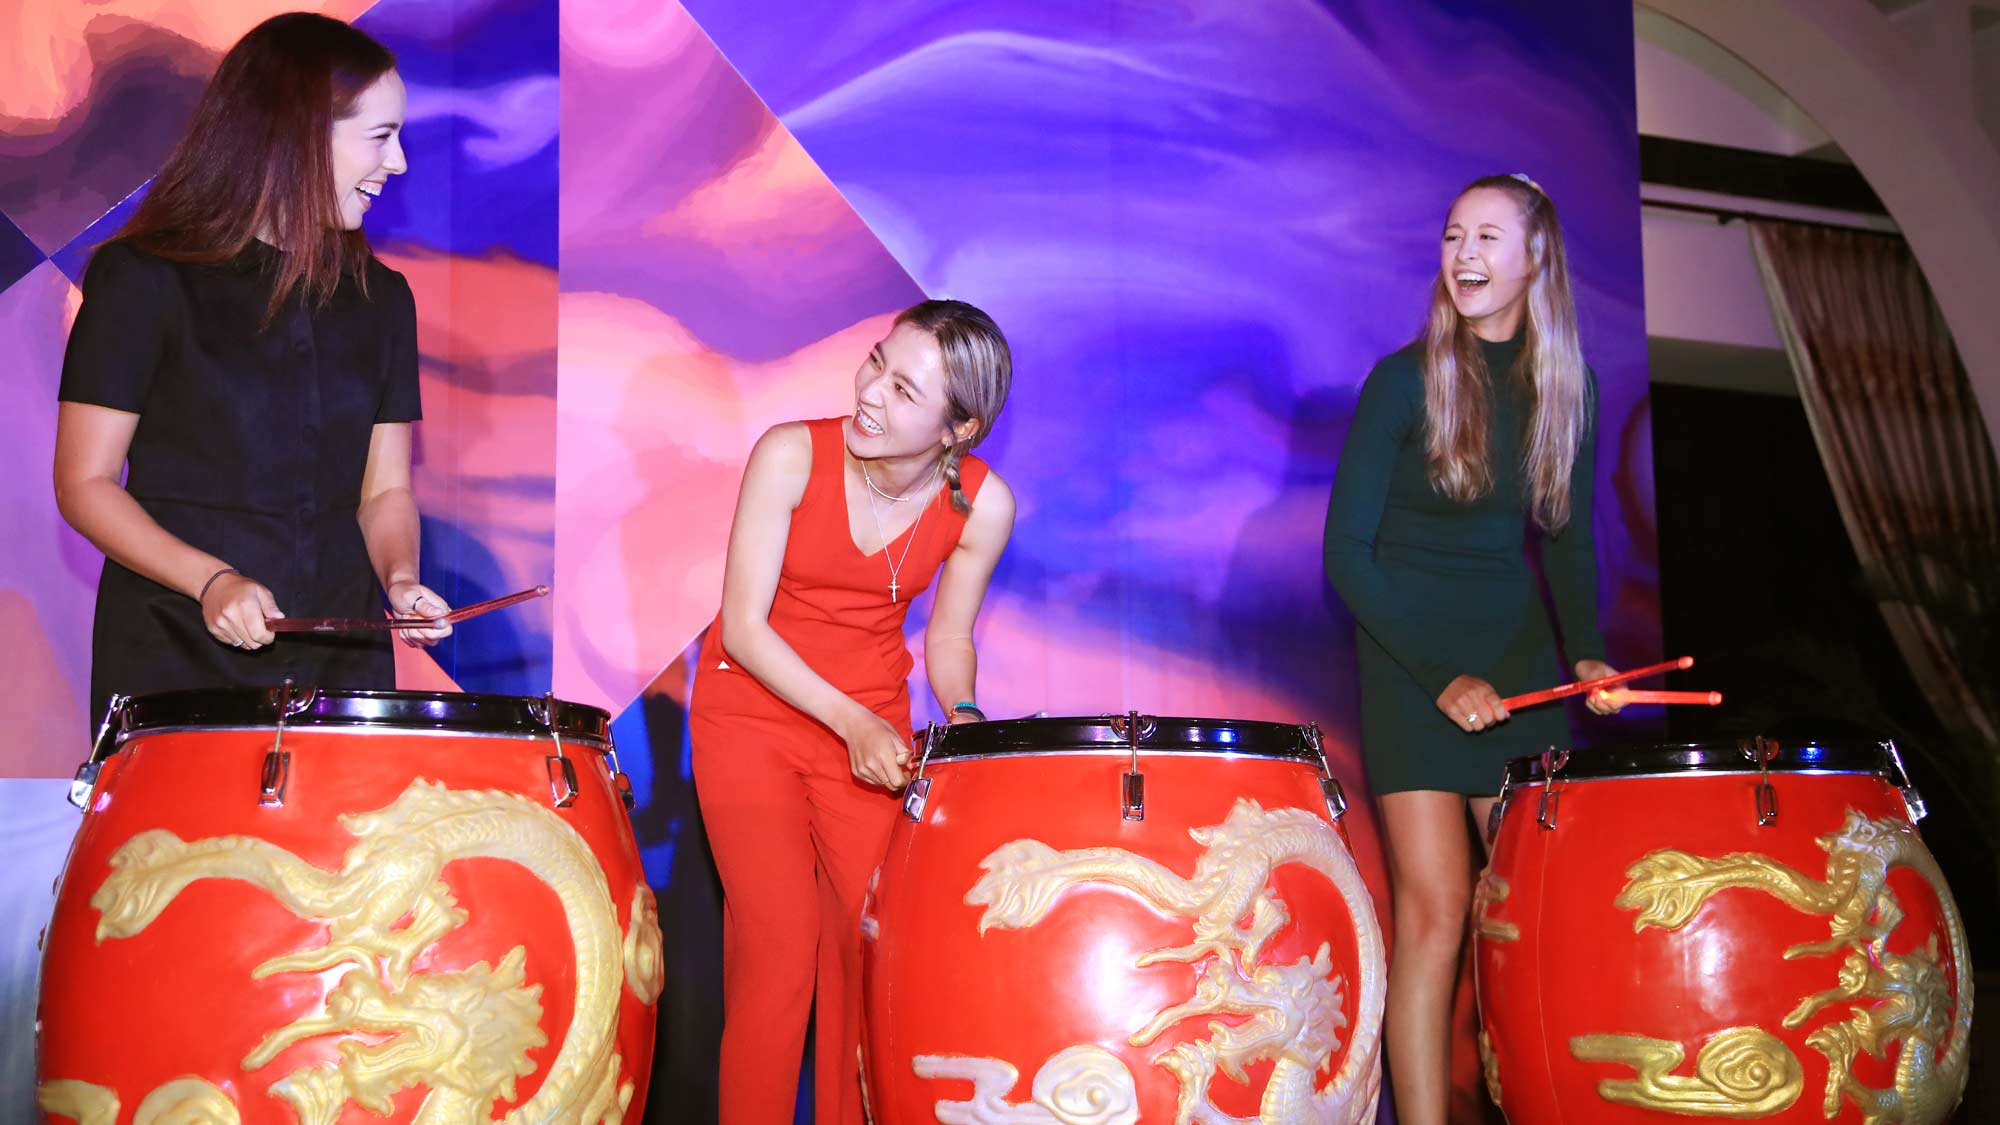 Georgia Hall of England, Lydia Ko of New Zealand and Nelly Korda of the United States attend a welcome dinner prior to the HSBC Women's World Championship at Sentosa Golf Club on February 26, 2019 in Singapore.